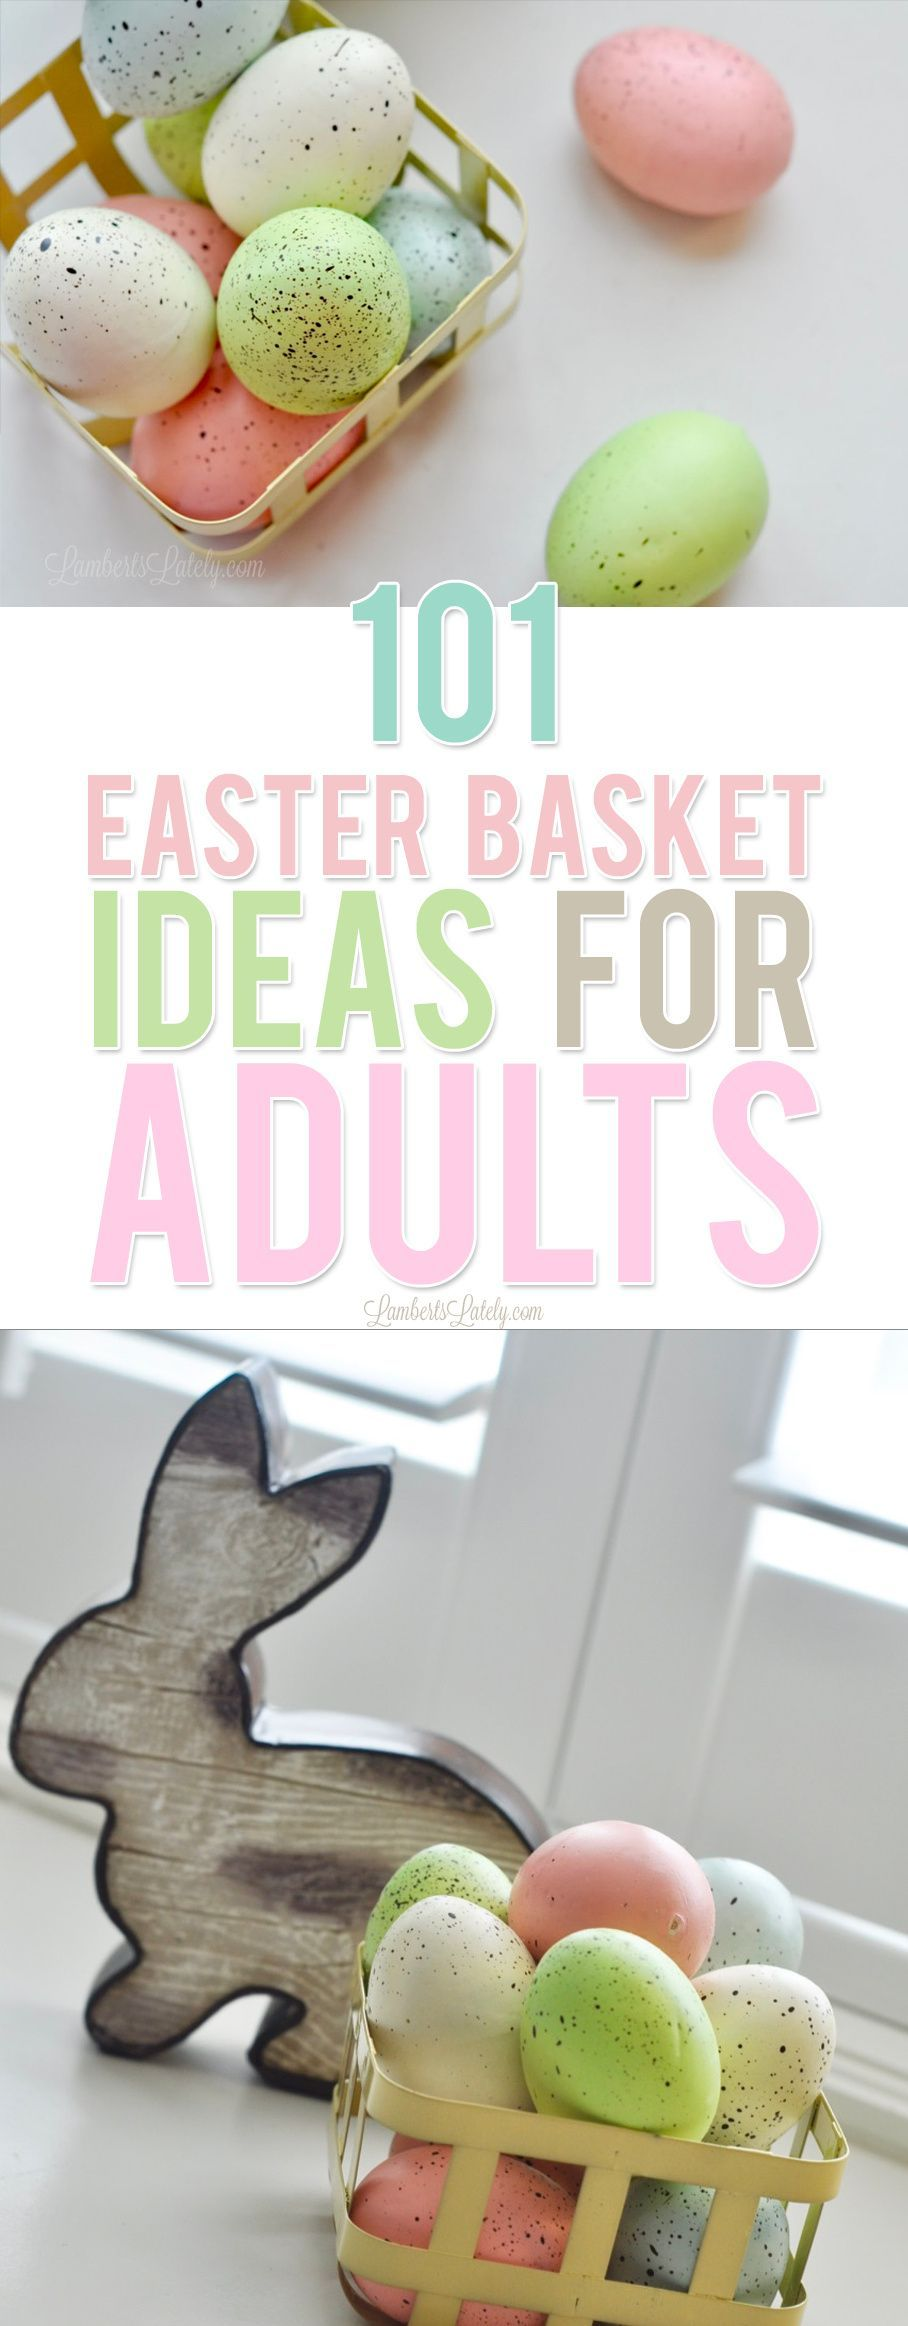 101 Easter Basket Ideas For Adults In 2021 Cheap Easter Baskets Easter Gift For Adults Easter Egg Stuffers